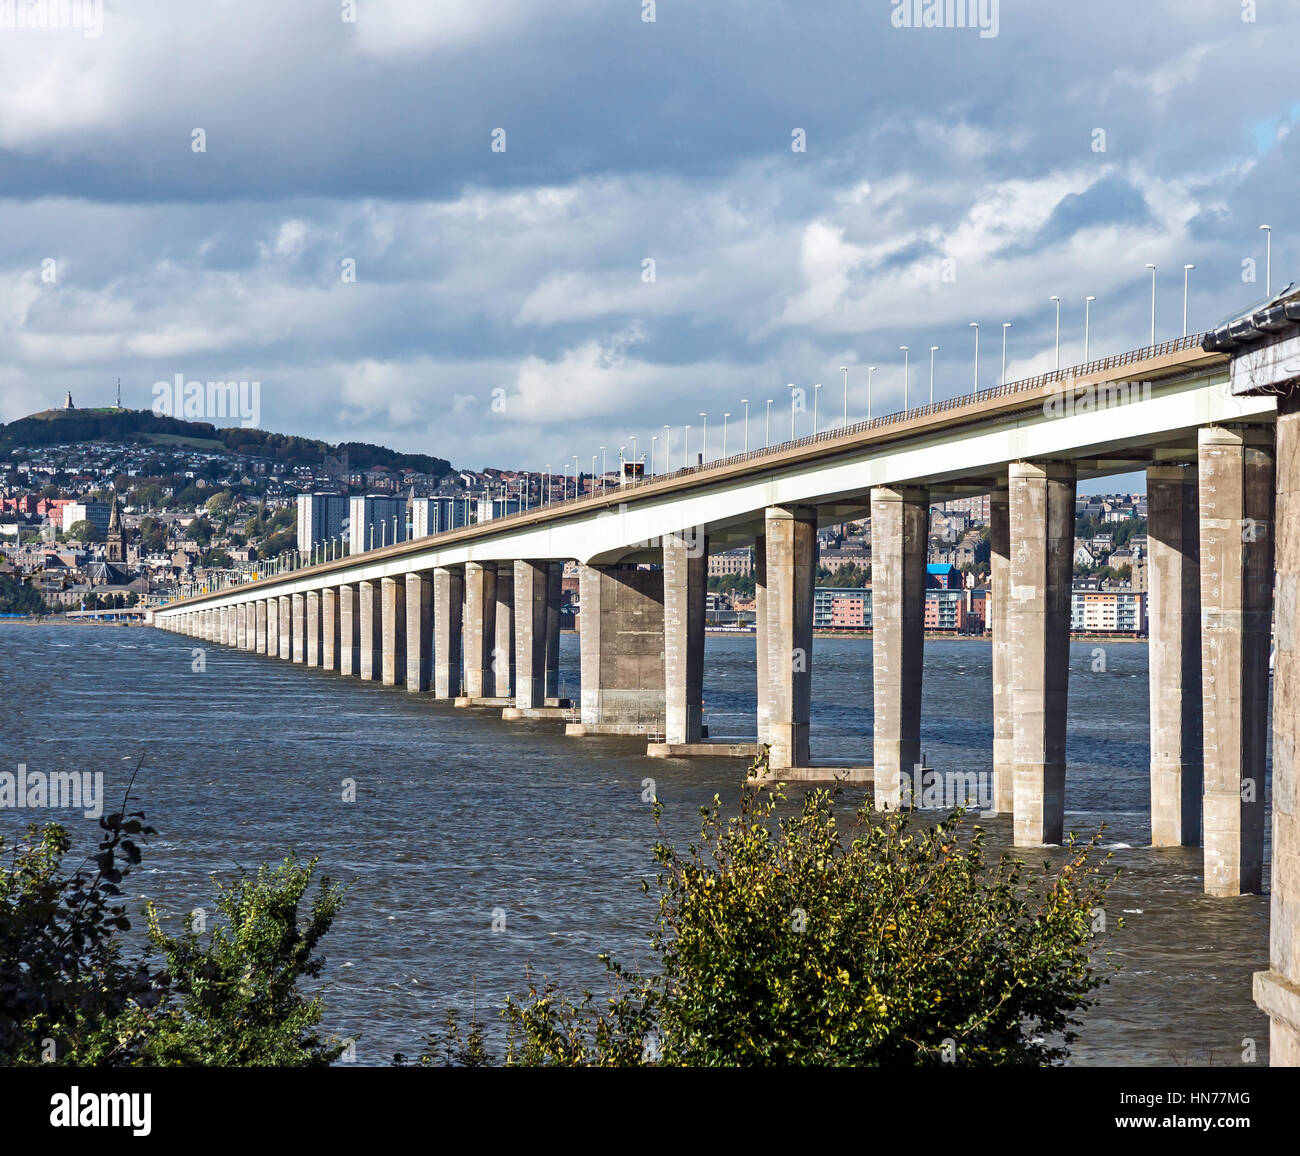 The Tay Road Bridge across the River Tay from Newport-on-Tay to Dundee in Scotland UK with Dundee in the background - Stock Image